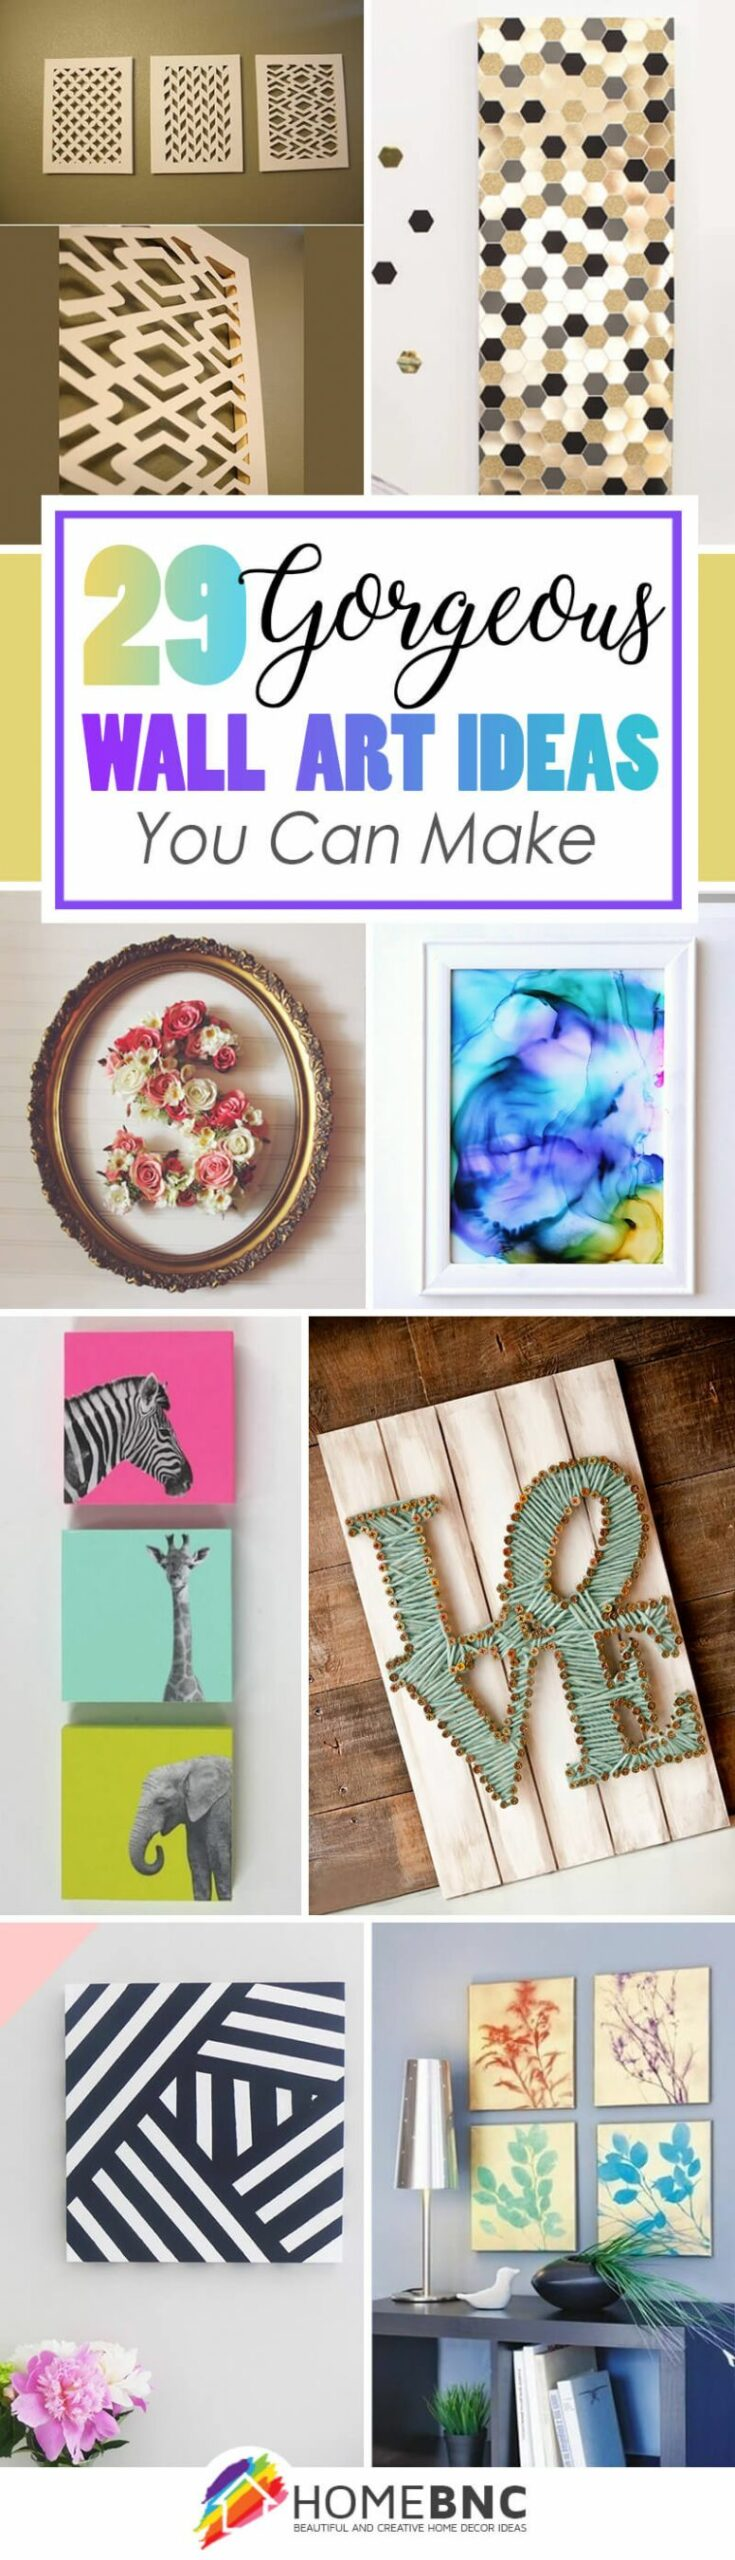 12 Best DIY Wall Art Ideas (Designs and Decorations) for 12 - wall decoration ideas easy diy